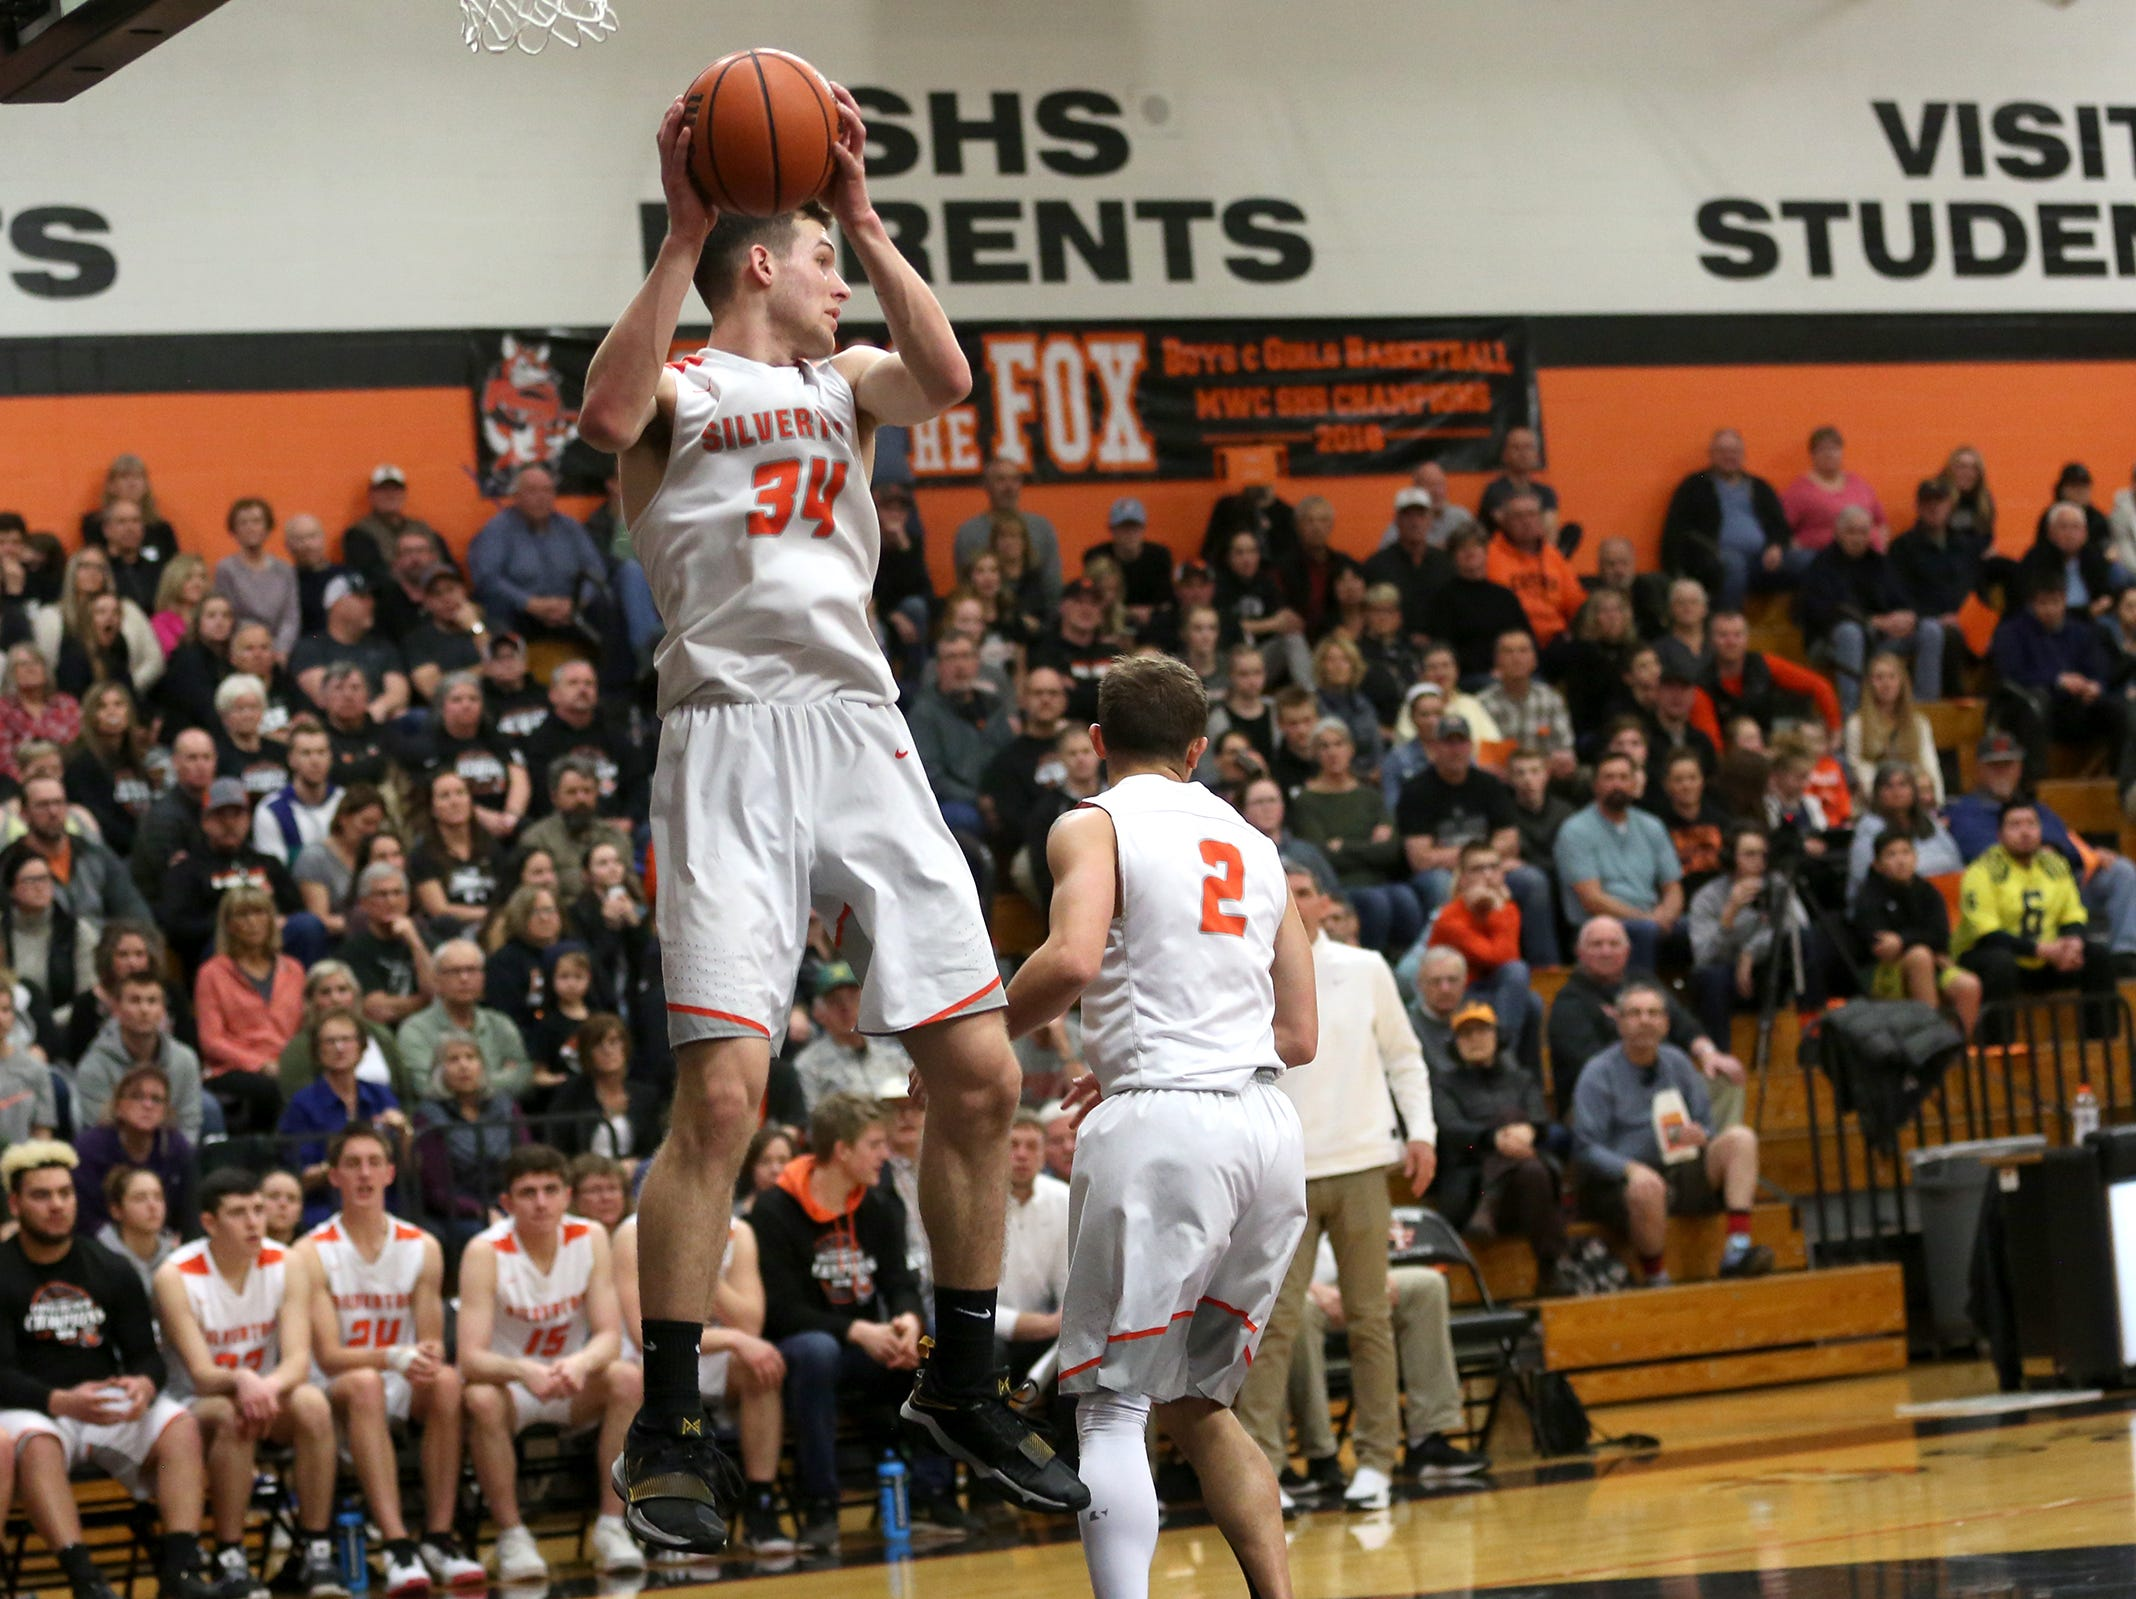 Silverton's Levi Nielsen (34) rebounds the ball during the Silverton vs. Springfield boys basketball OSAA state playoffs game at Silverton High School in Silverton on Saturday, March 2, 2019.